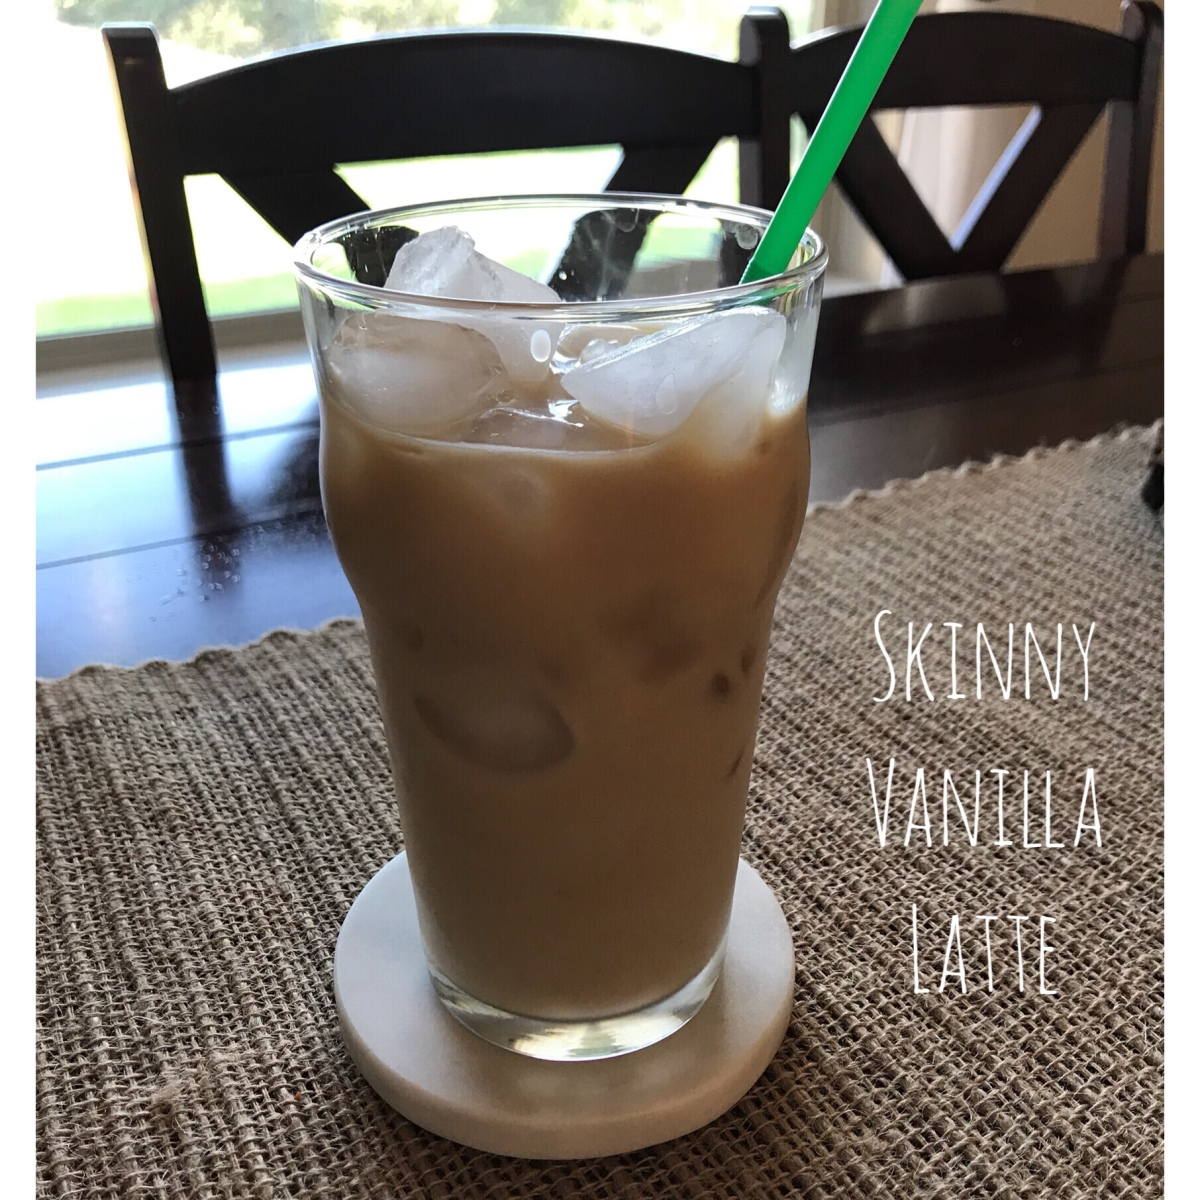 EAT | 5 Cal Skinny Vanilla Latte (Just like Starbucks!)